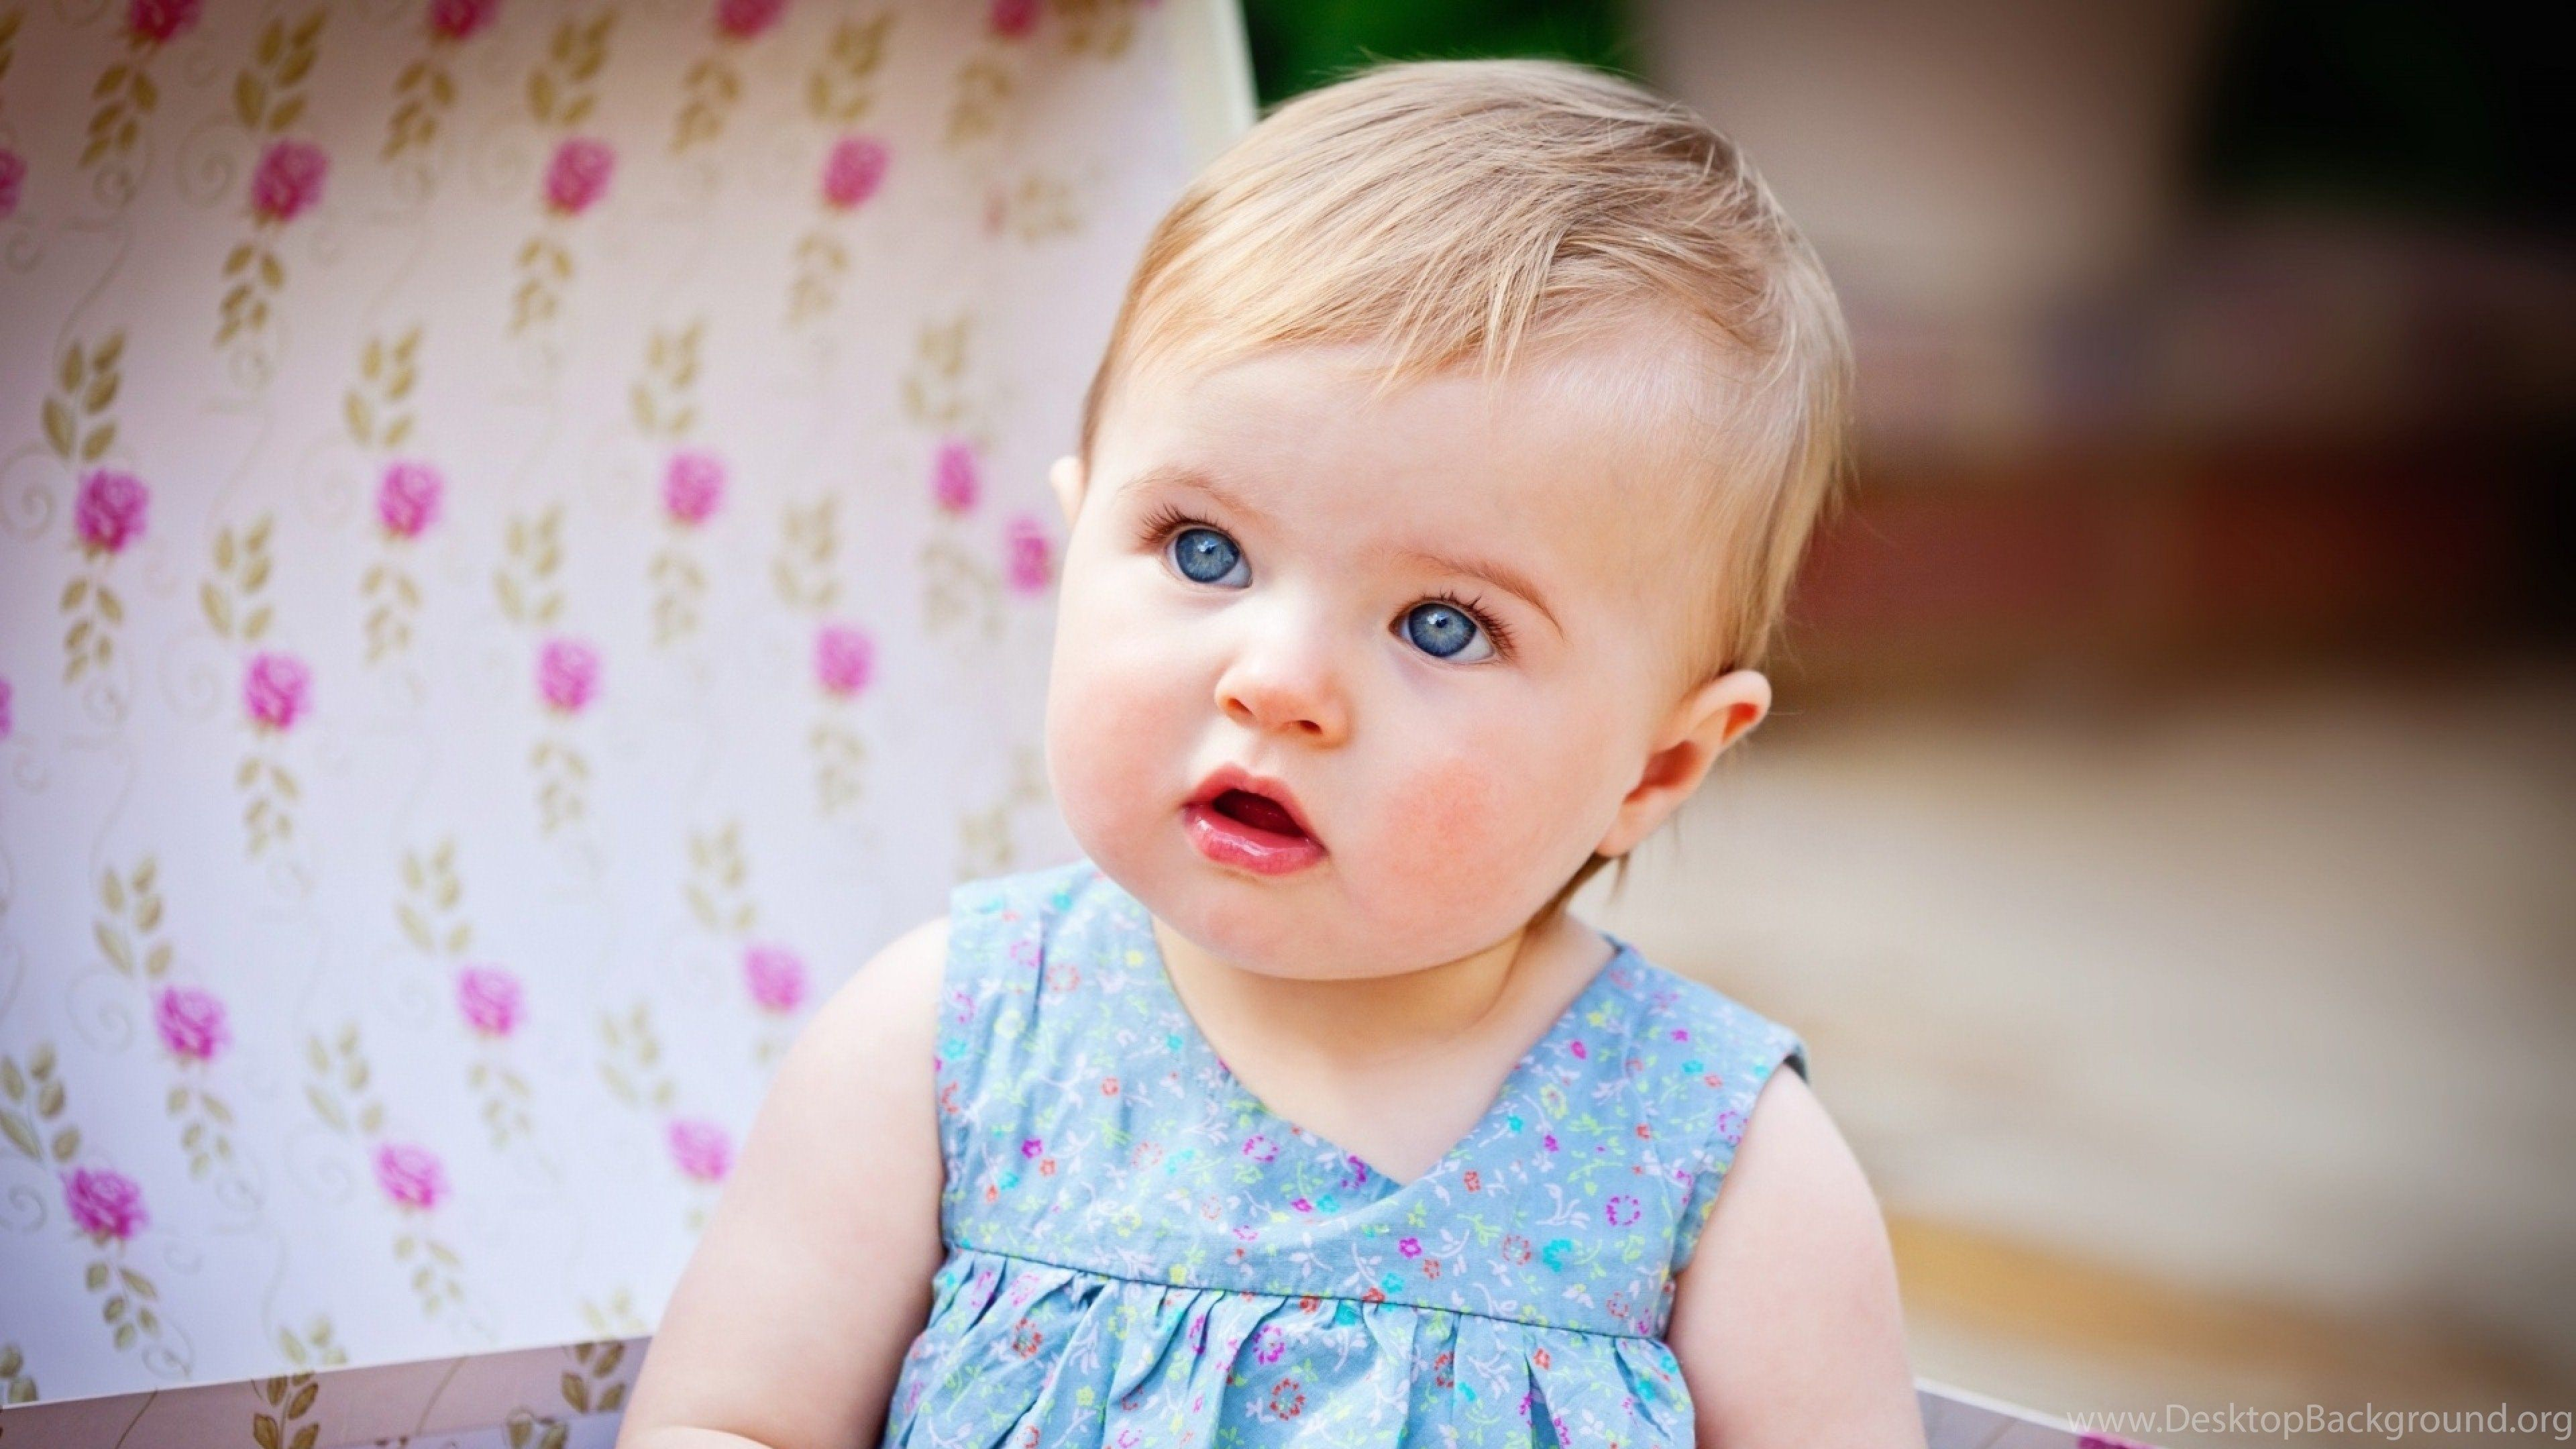 Wallpapers Cute Baby Girl With Beautiful Blue Eye Wallpapers ...